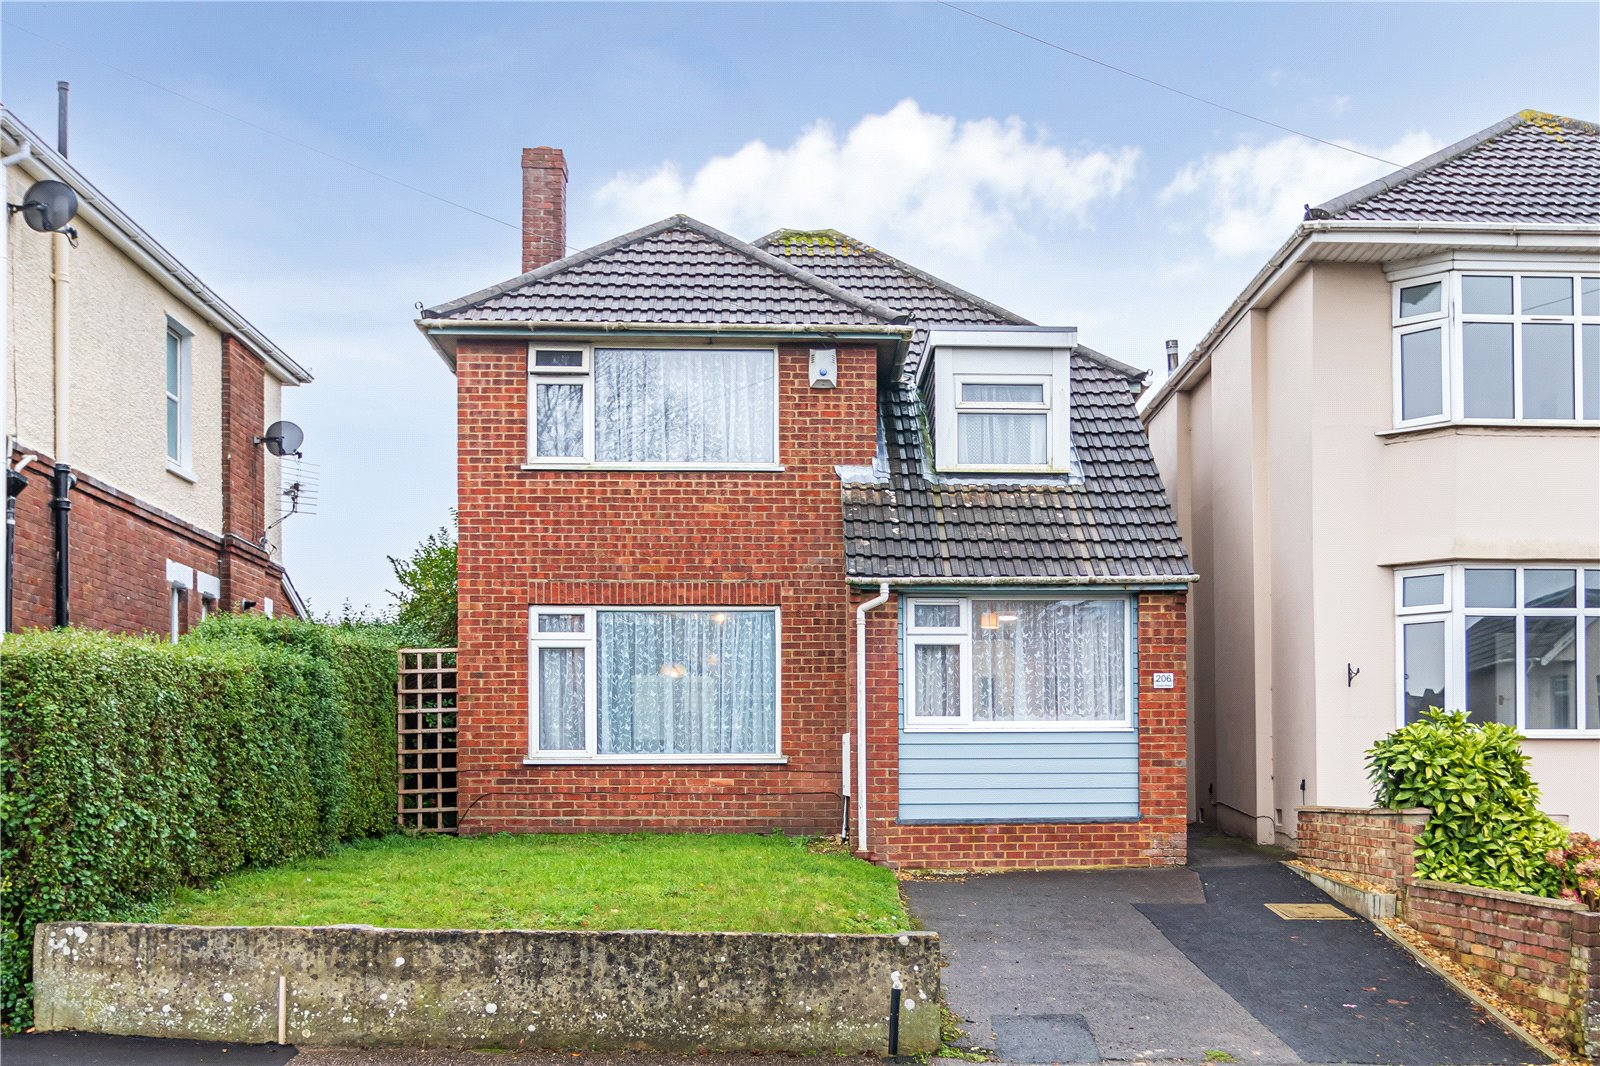 4 bed house for sale in Kinson Road, Bournemouth, BH10